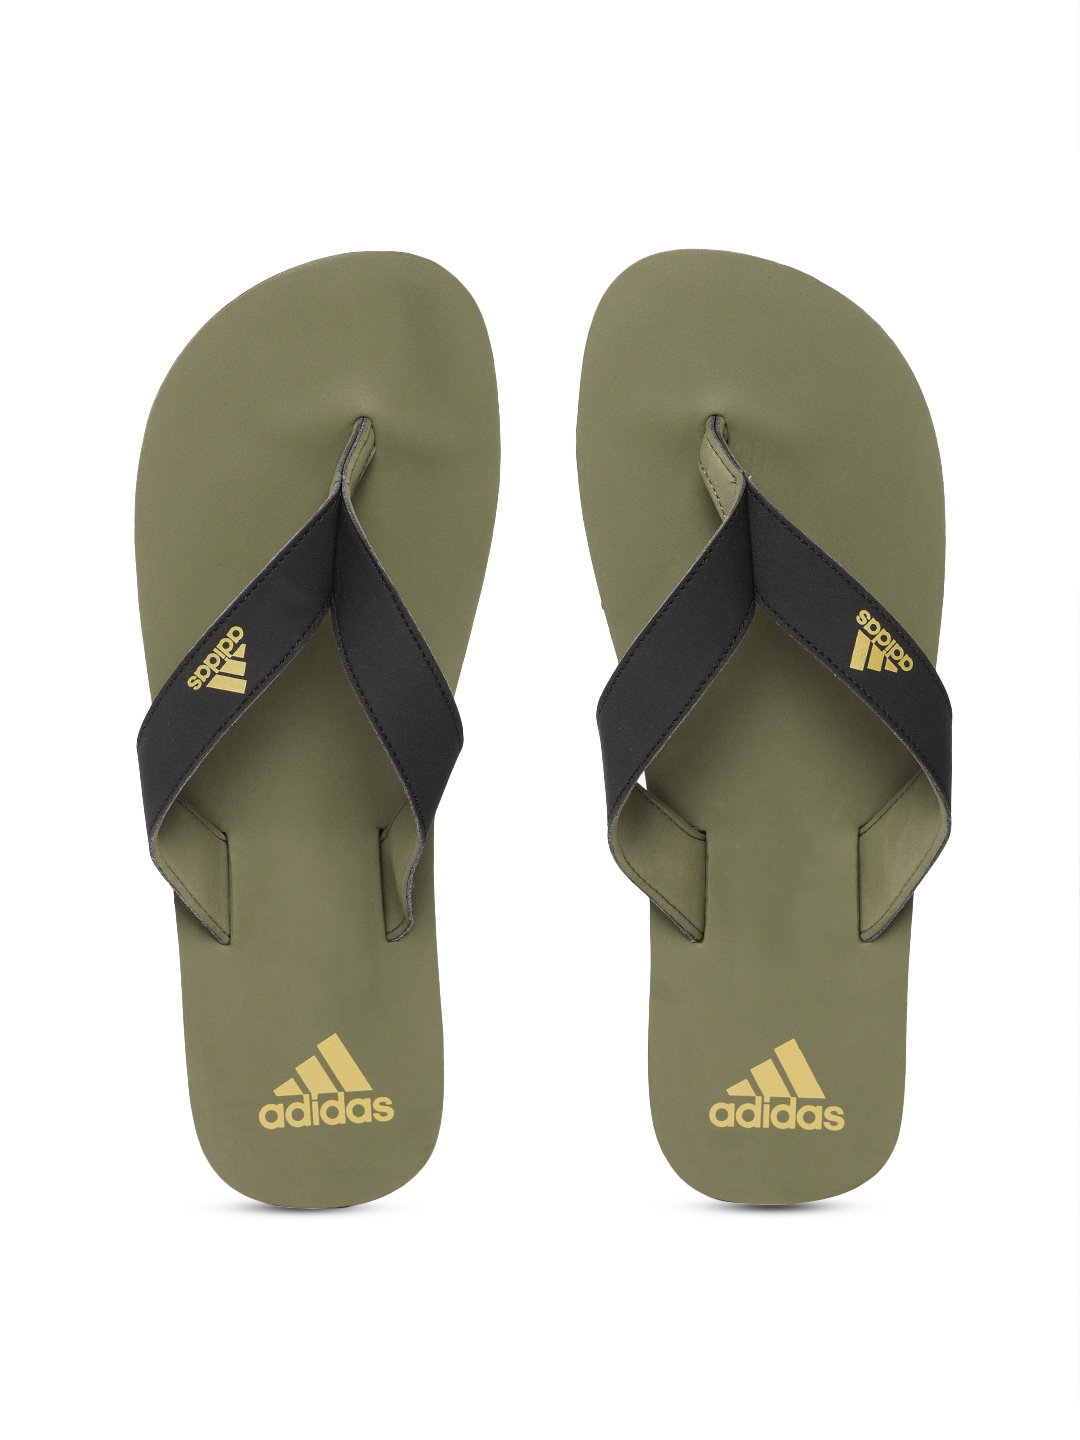 24946e171 Men s Adidas Flip Flops - Buy Adidas Flip Flops for Men Online in India